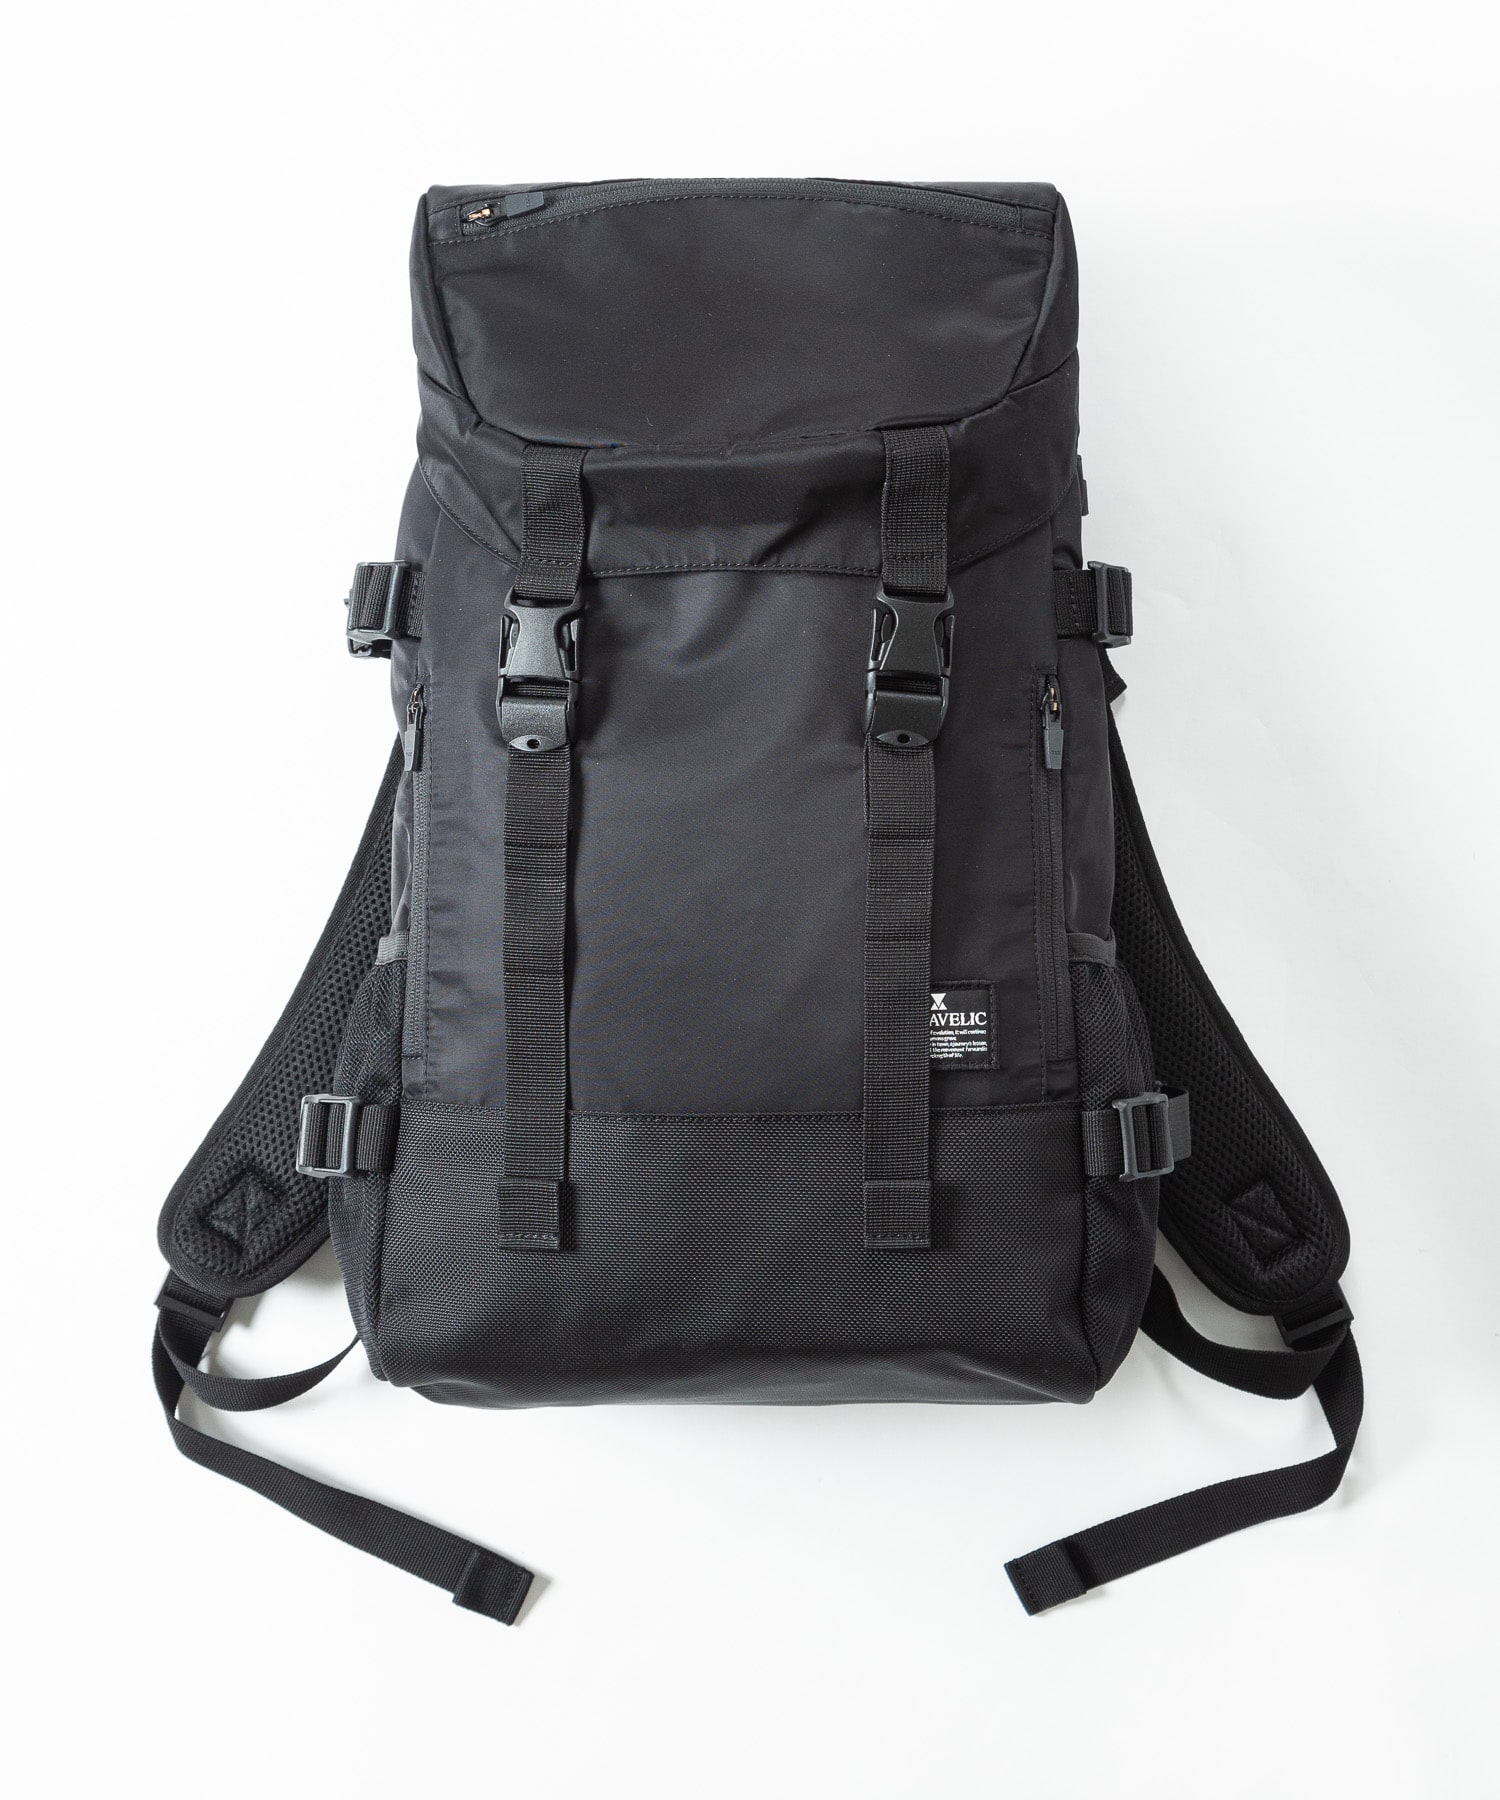 DOUBLE BELT PMD REMIX DAYPACK/リュック